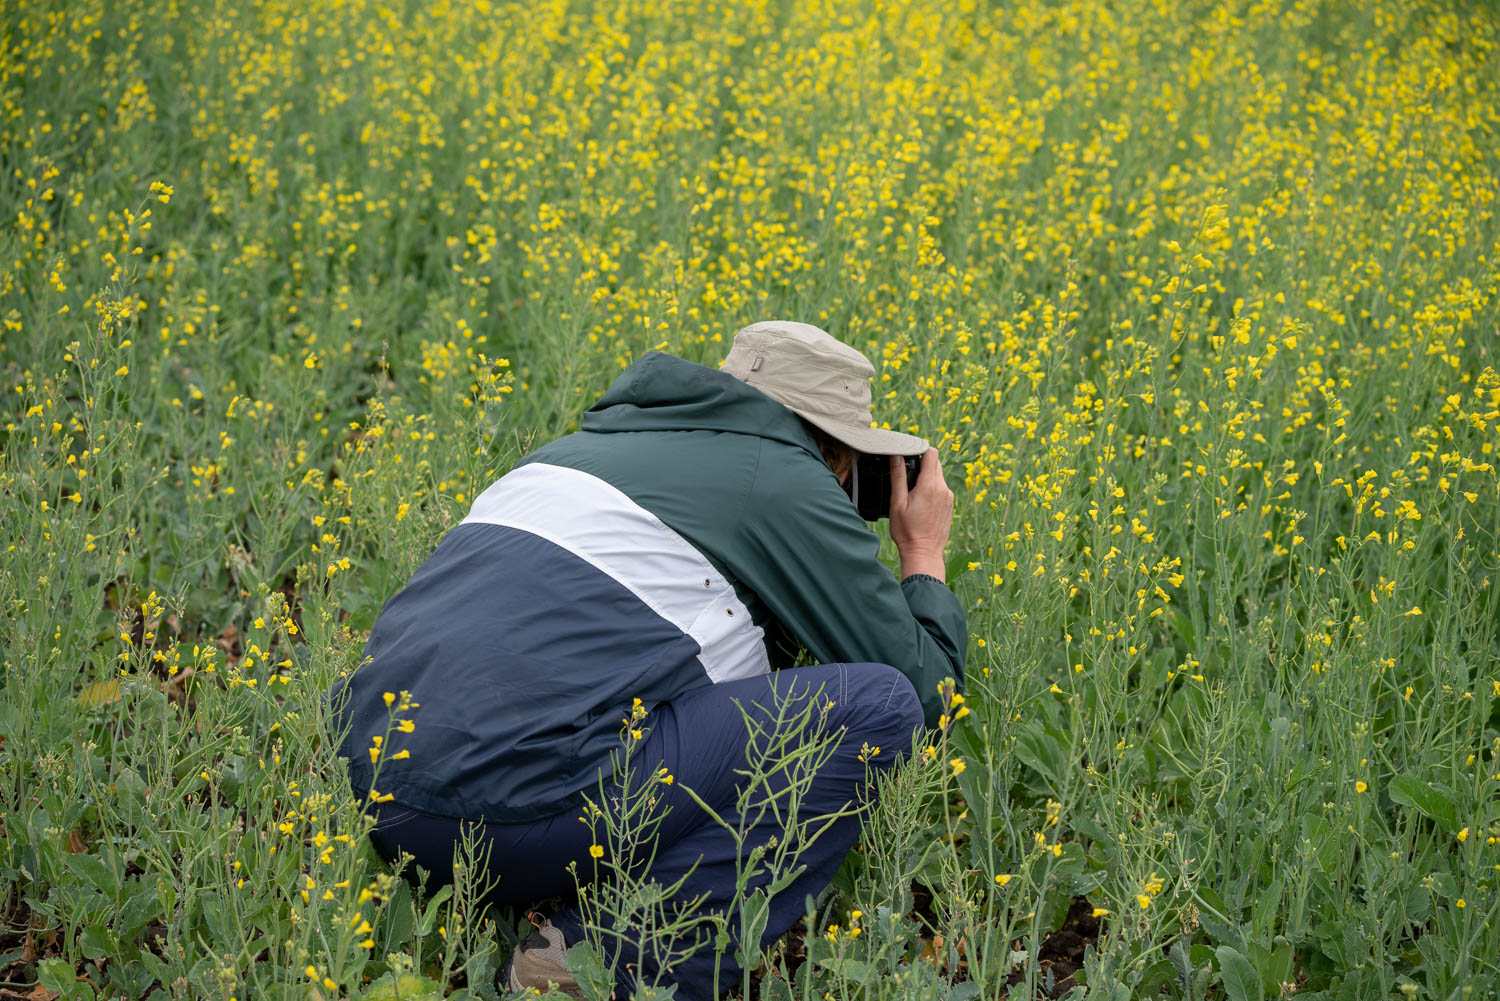 palouse phtoography workshop participants in the field